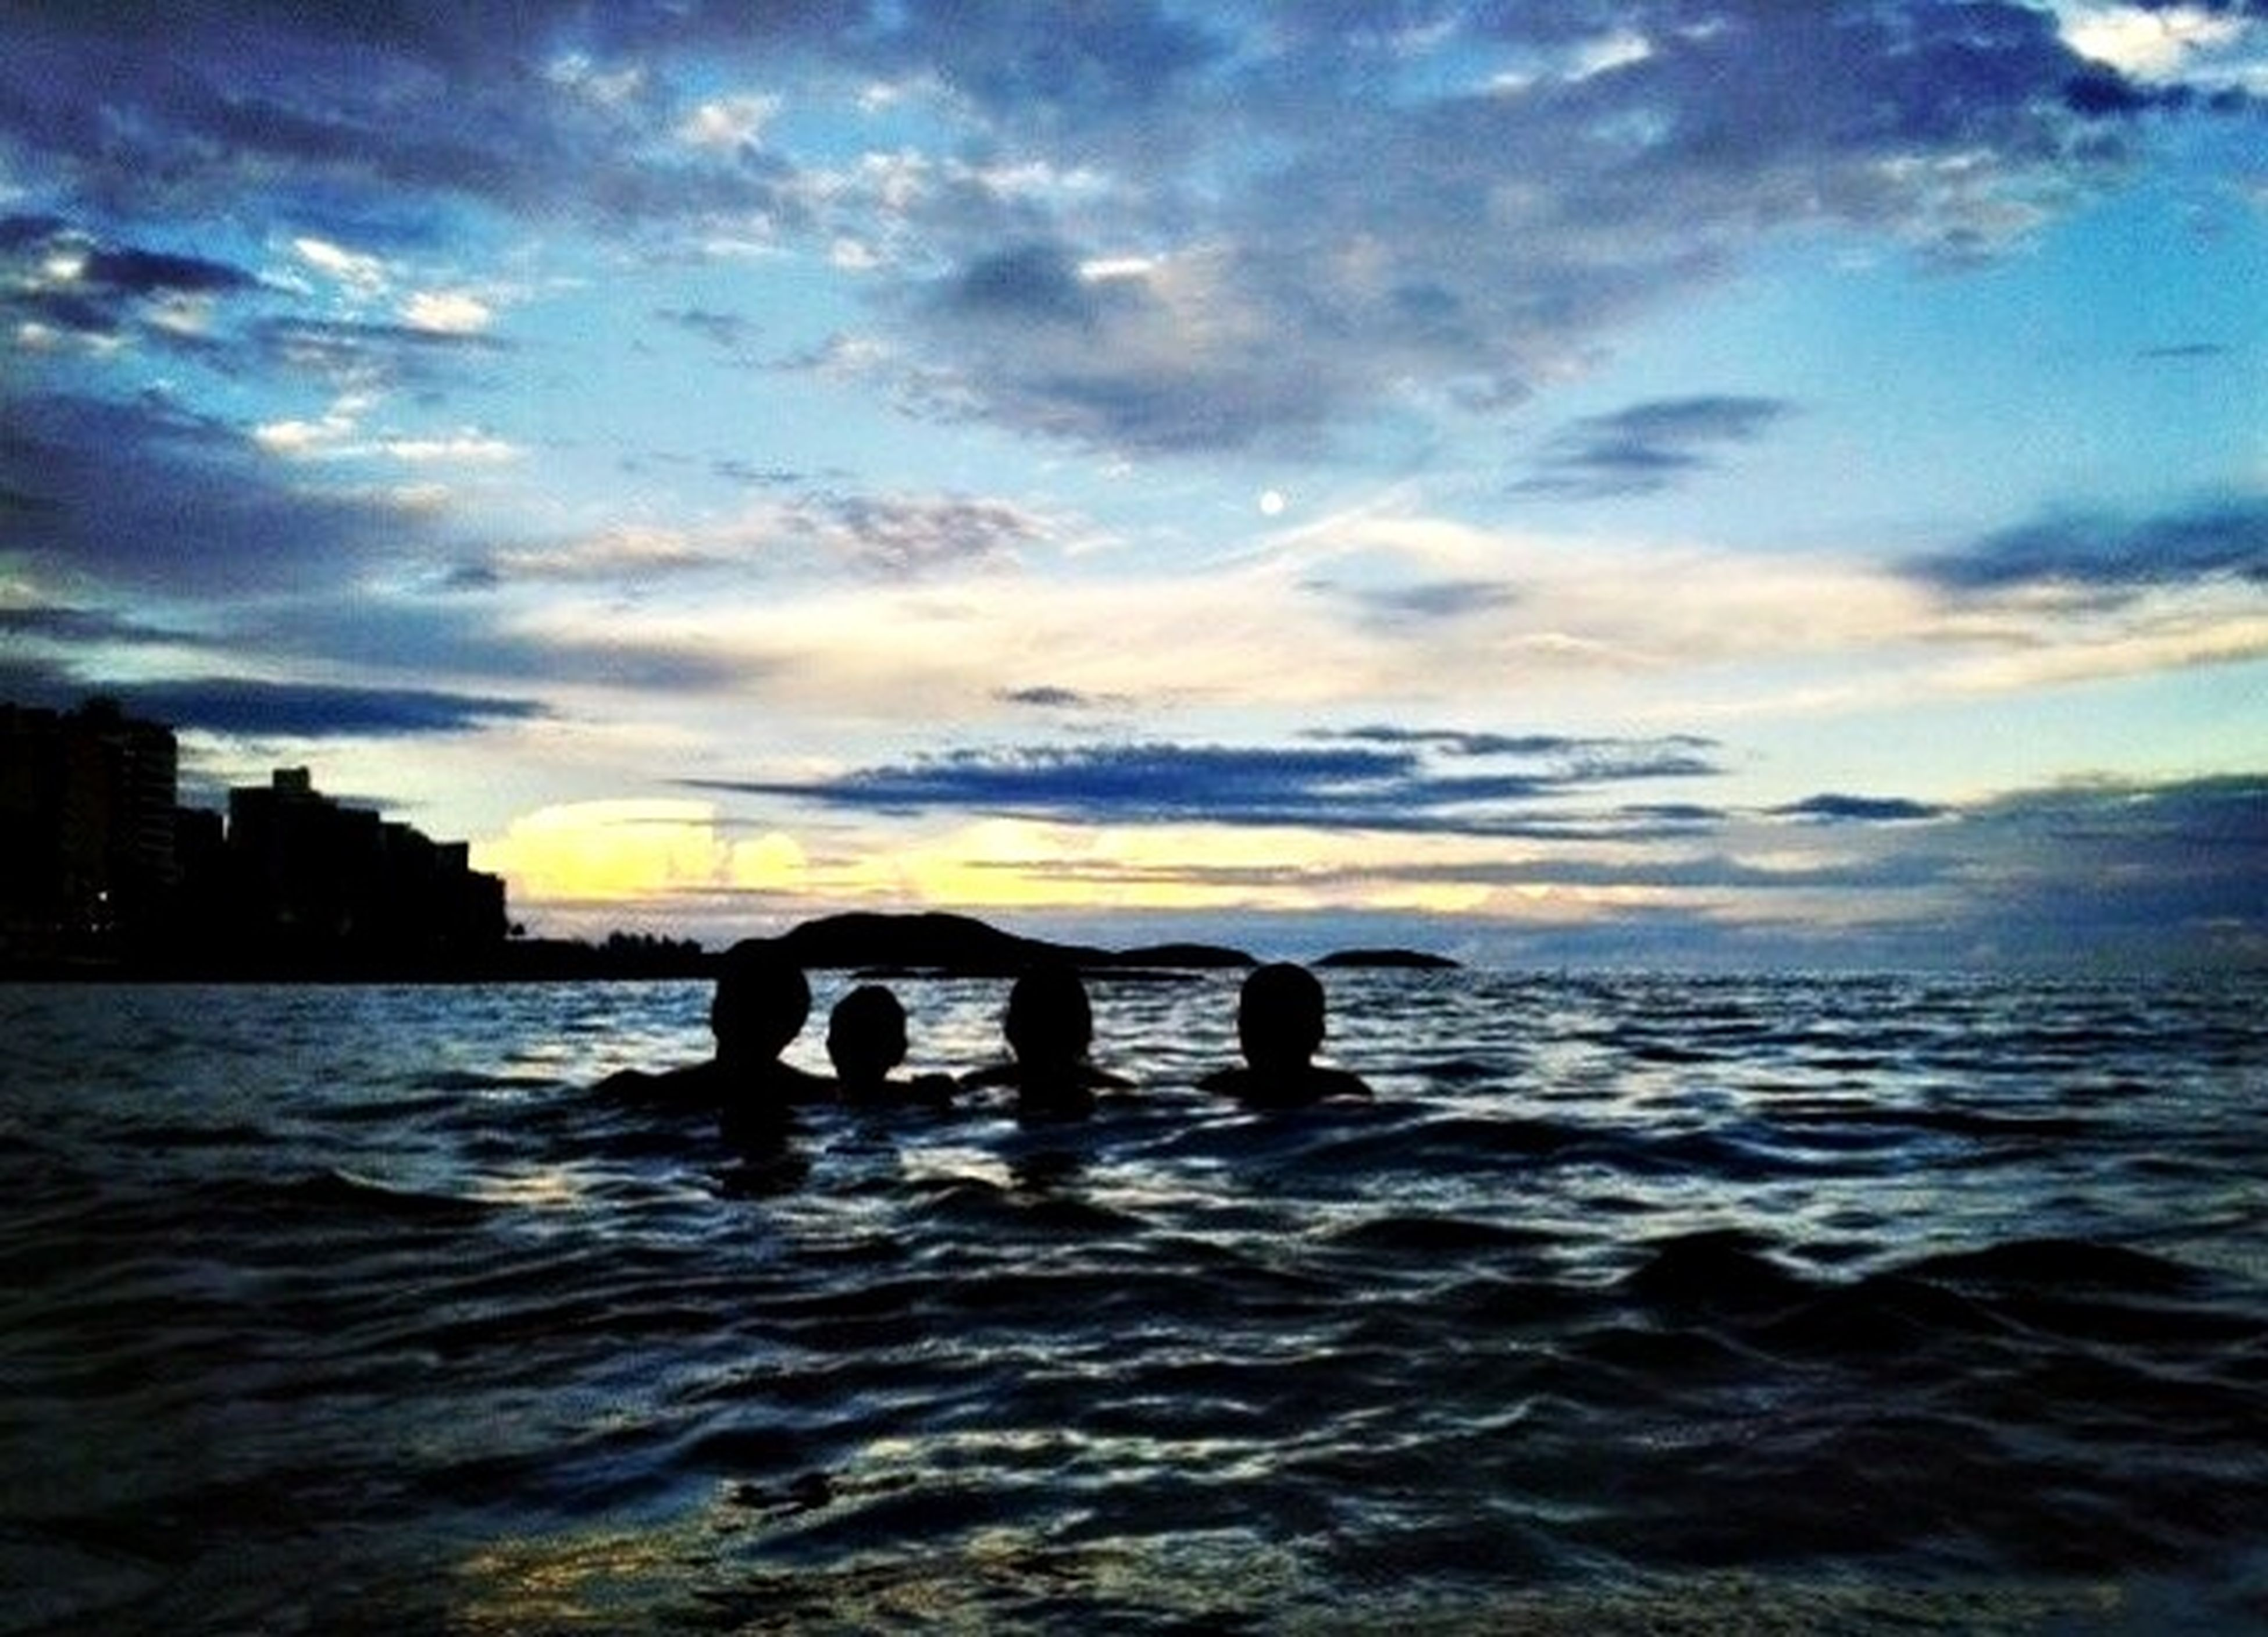 water, sunset, sky, sea, cloud - sky, silhouette, leisure activity, lifestyles, waterfront, scenics, men, horizon over water, beauty in nature, beach, cloud, nature, tranquil scene, reflection